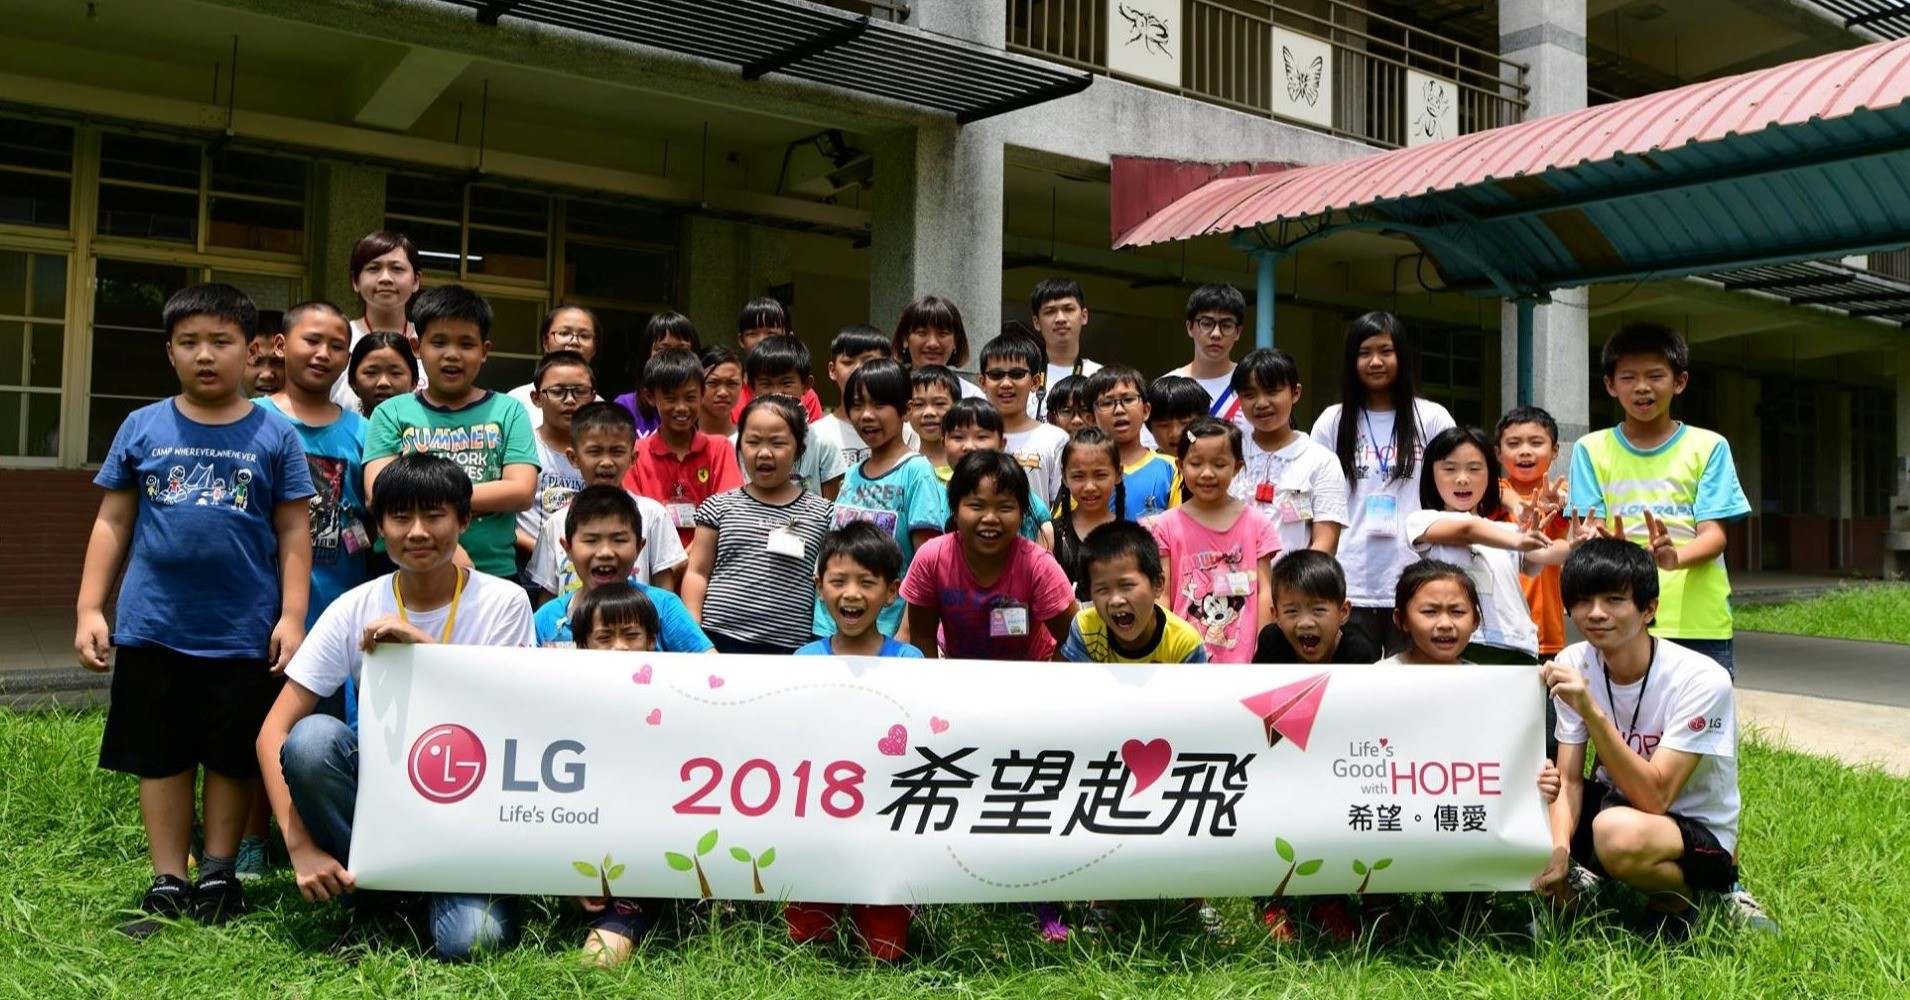 Car, Team sport, Social group, Team, Recreation, Product, Youth, Competition, , LG Electronics, lg, social group, team, team sport, community, sports, youth, vehicle, recreation, fun, child, LG